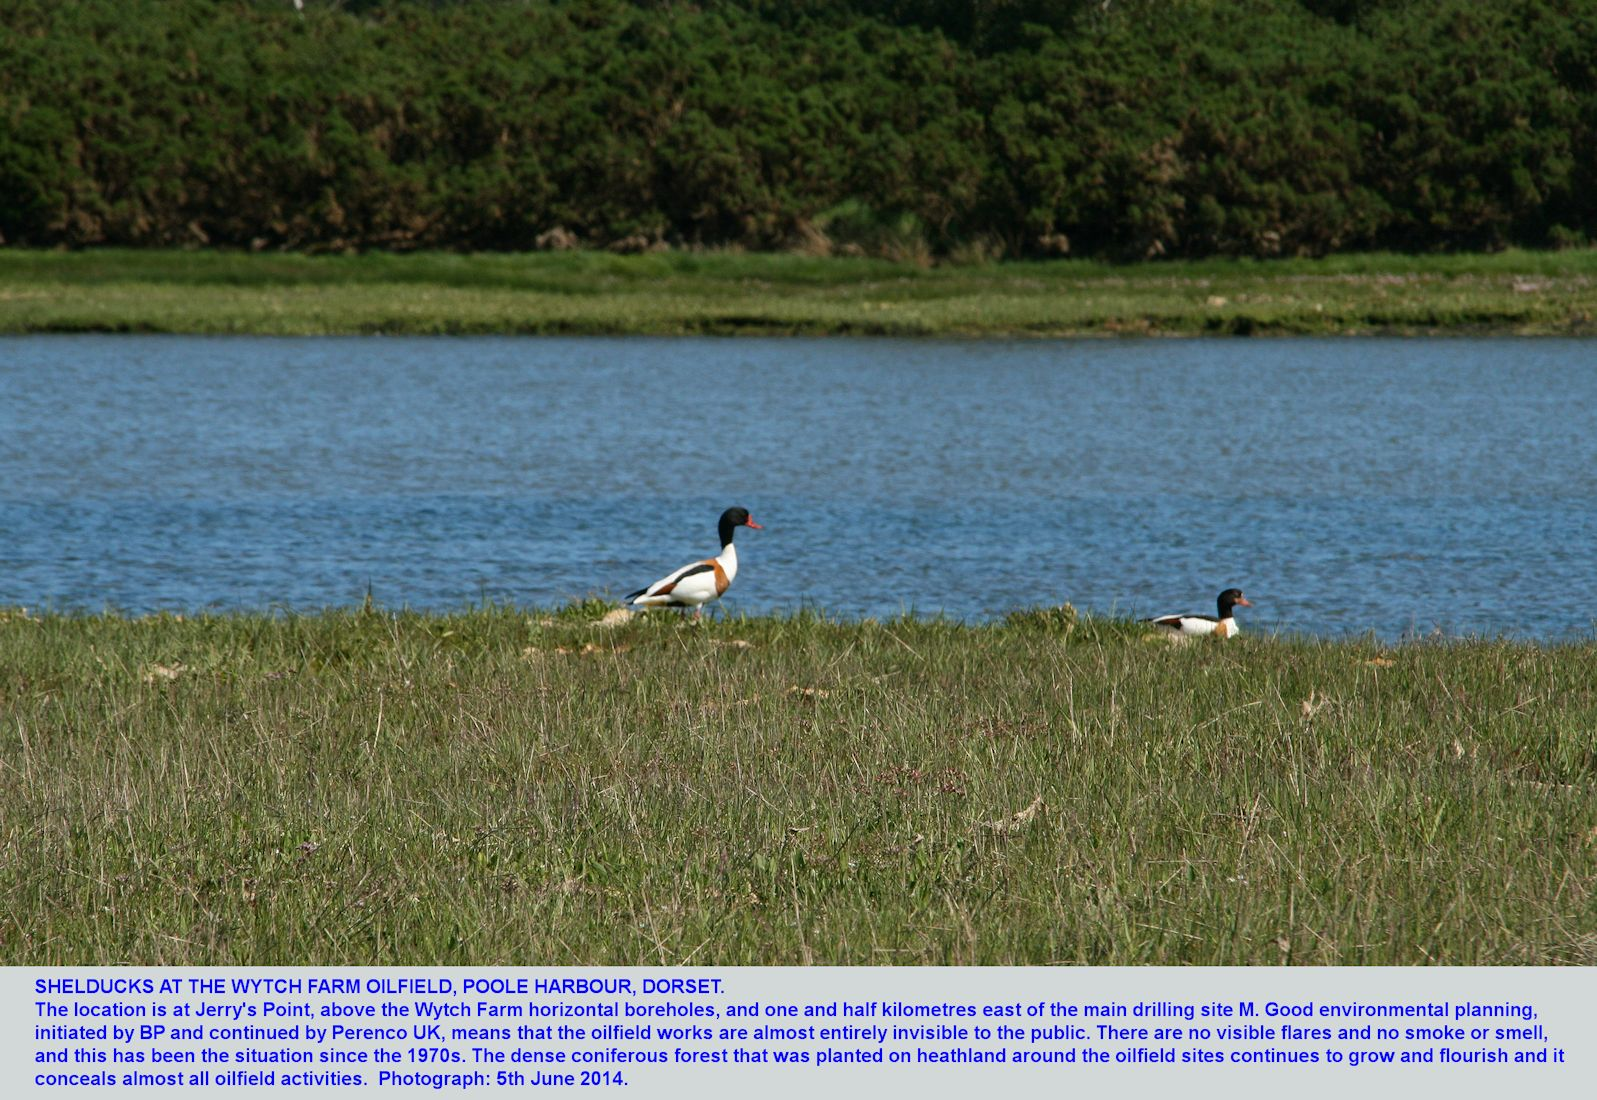 Shelducks on the east side of the South Haven, Studland, peninsula, above the horizontal wells and only one and half kilometres east of the main drilling site of the Wytch Farm Oilfield, 5th June 2014